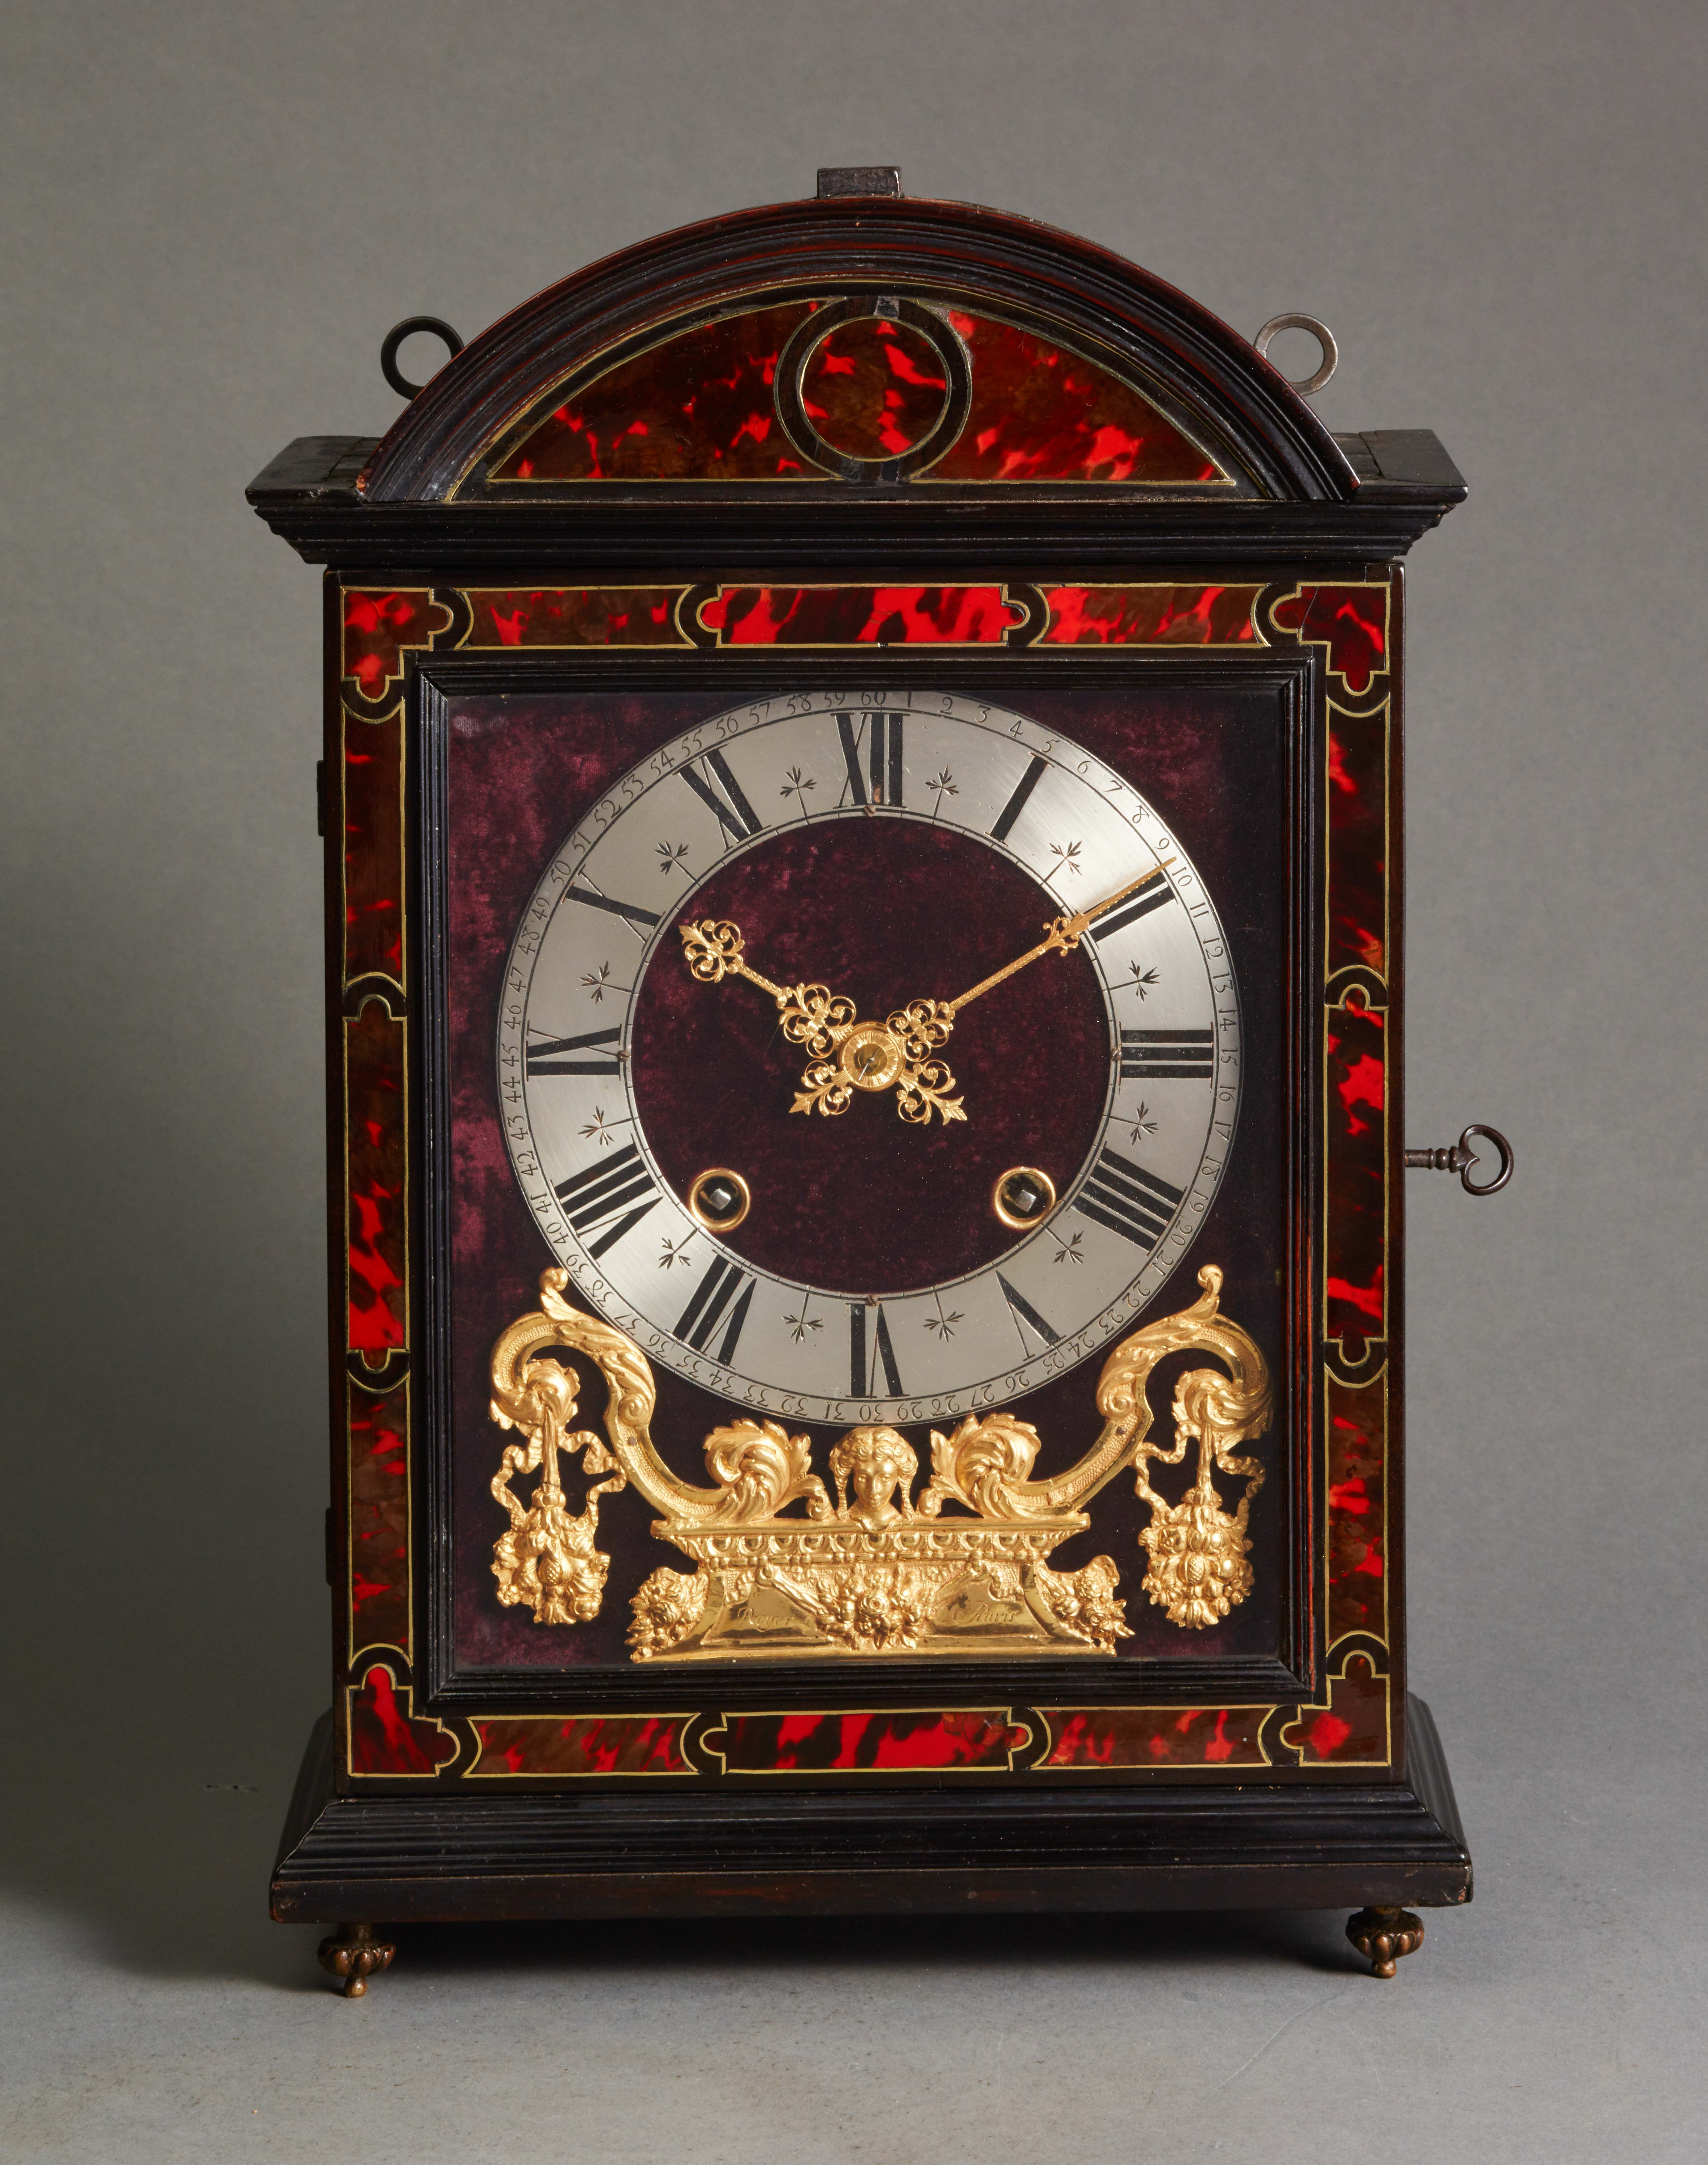 Late 17th century Louis XIV religieuse clock signed